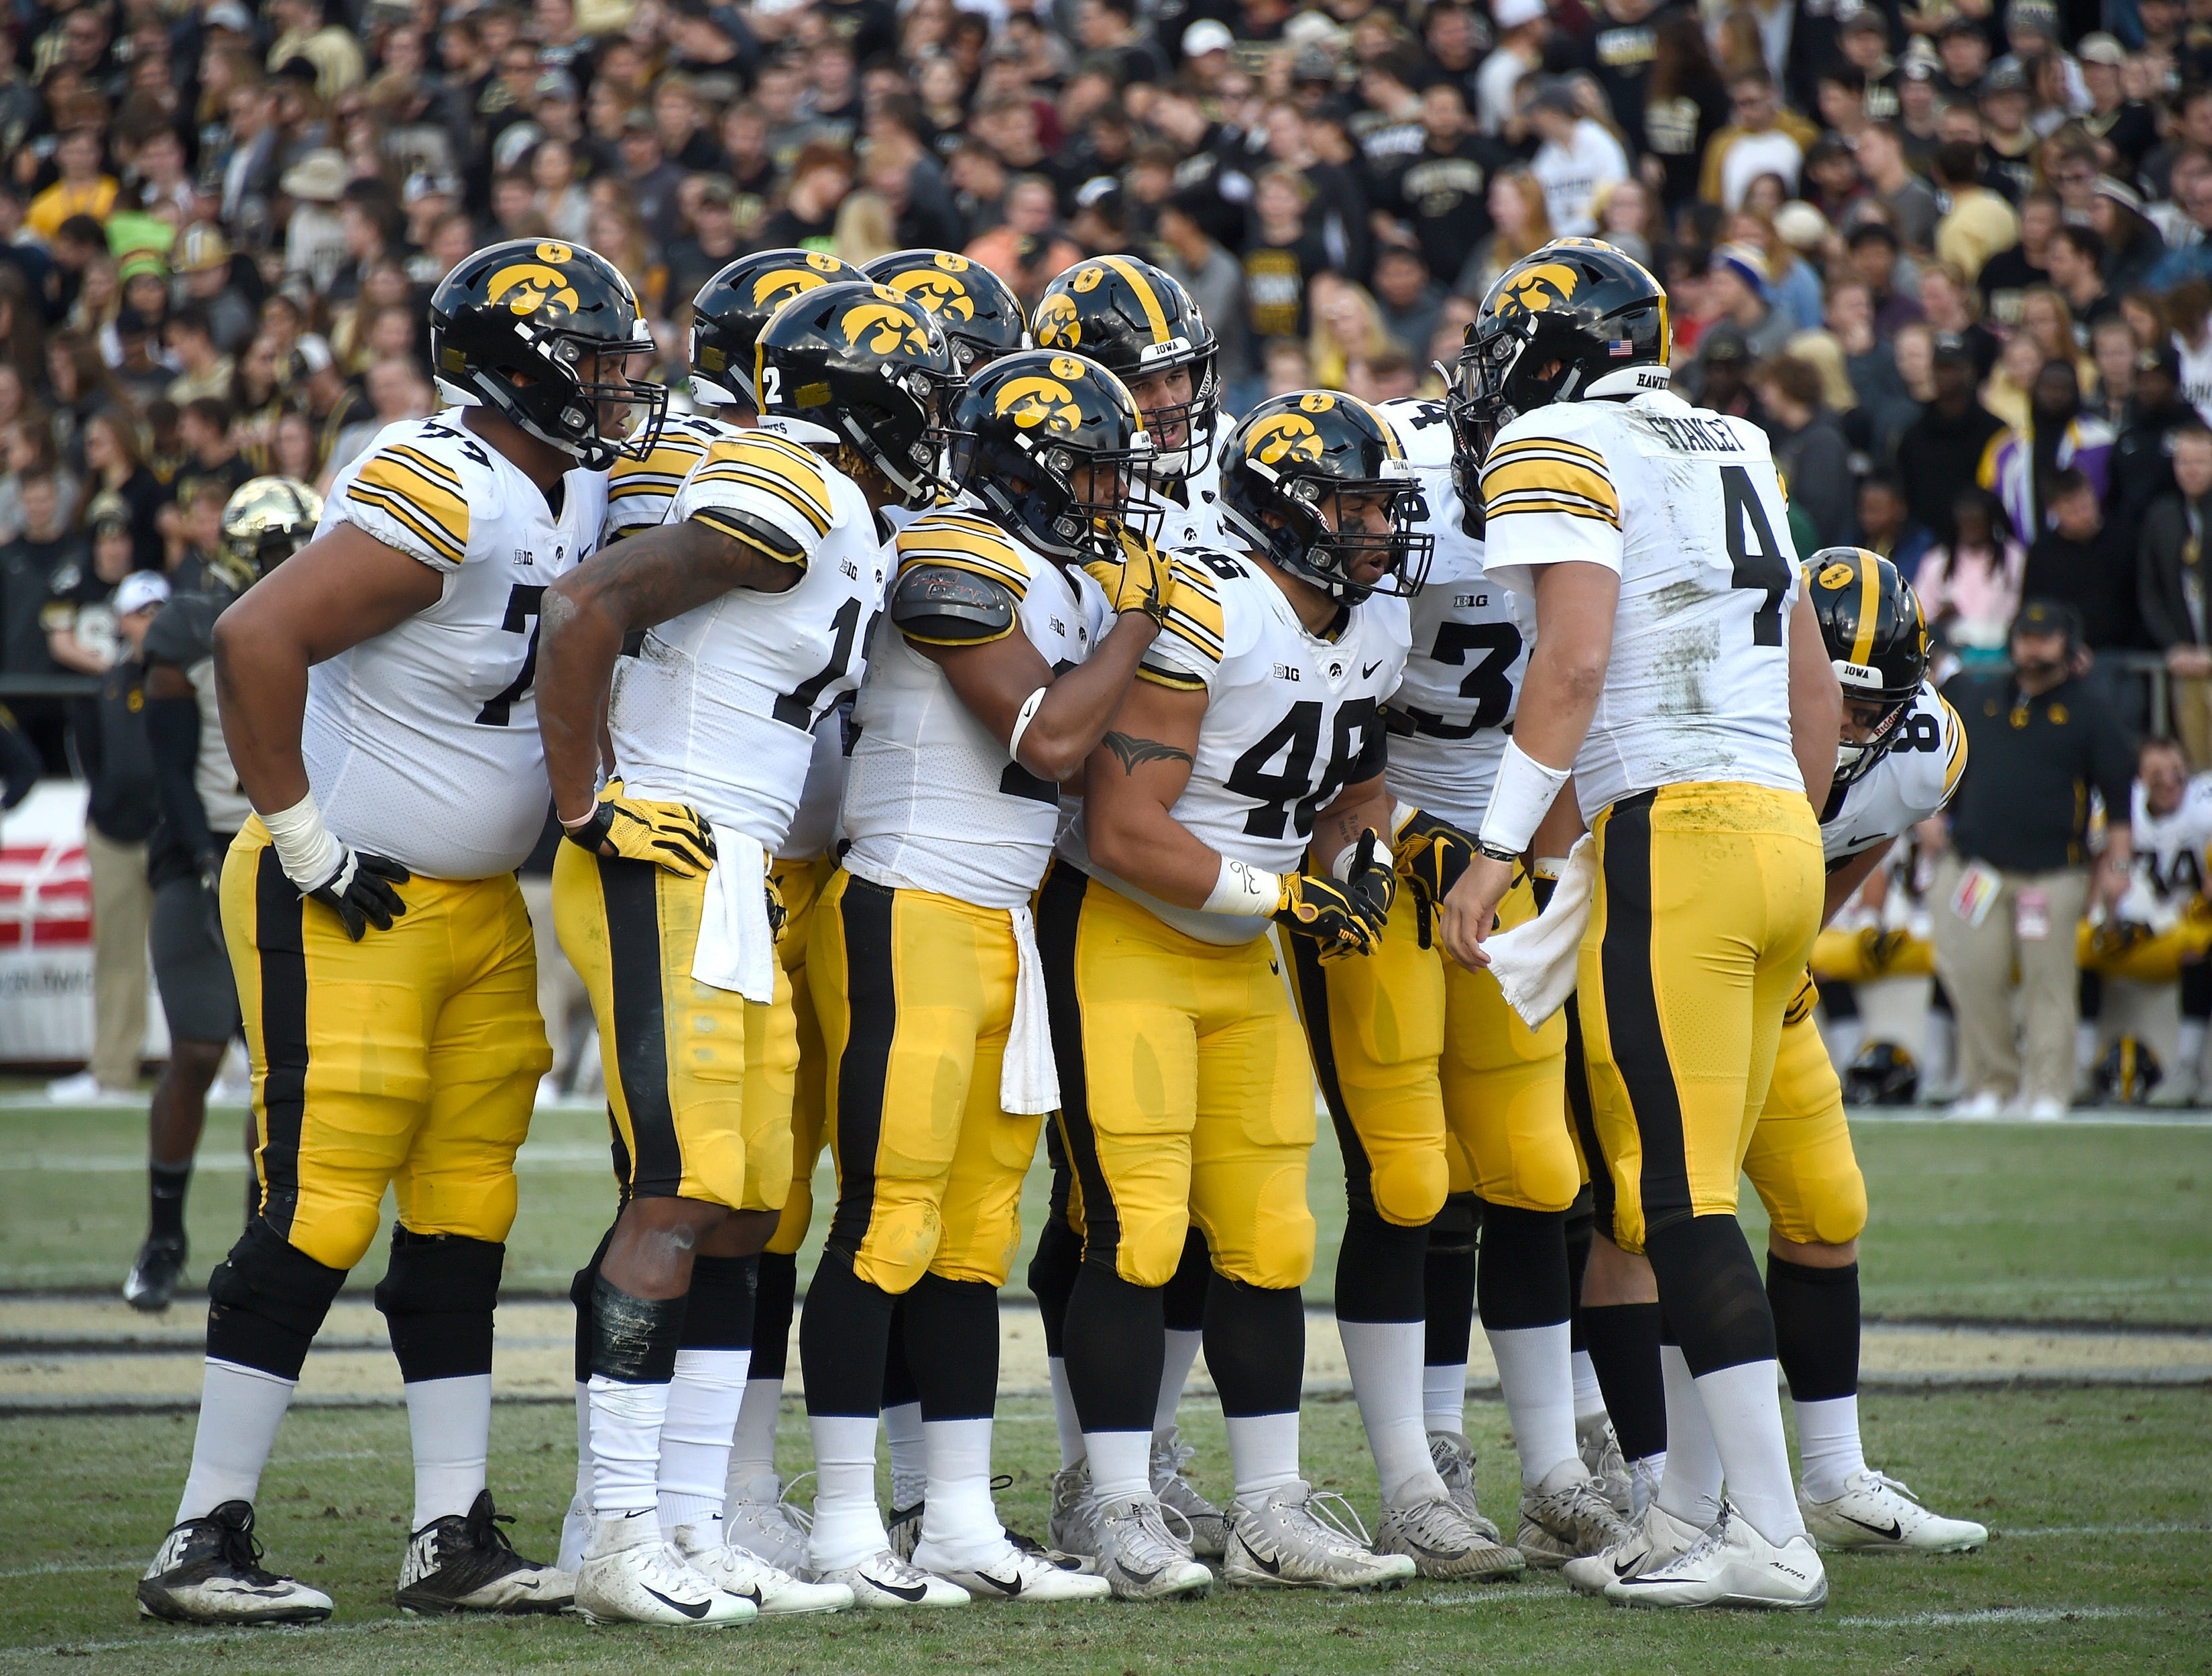 Nov 3, 2018; West Lafayette, IN, USA; Iowa Hawkeyes quarterback Nate Stanley (4) sets up a play in the huddle at Ross-Ade Stadium.